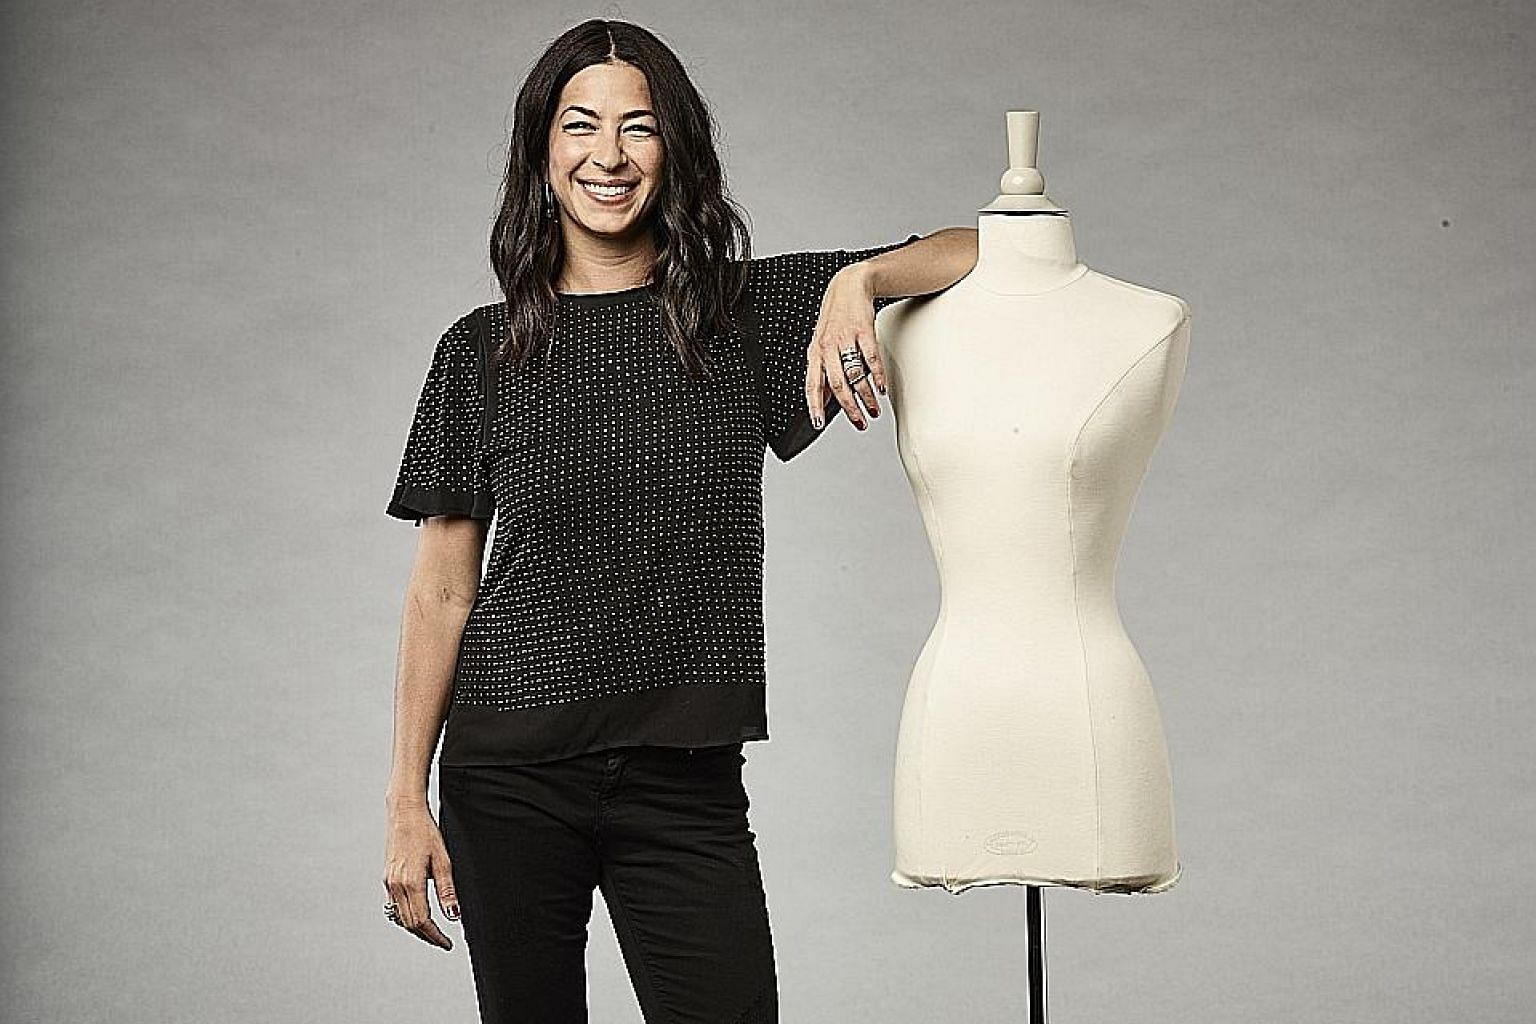 Rebecca Minkoff's brand is known for its fun and colourful leather handbags. It also sells footwear, jewellery and apparel, including a men's clothing and accessories line called Uri Minkoff.